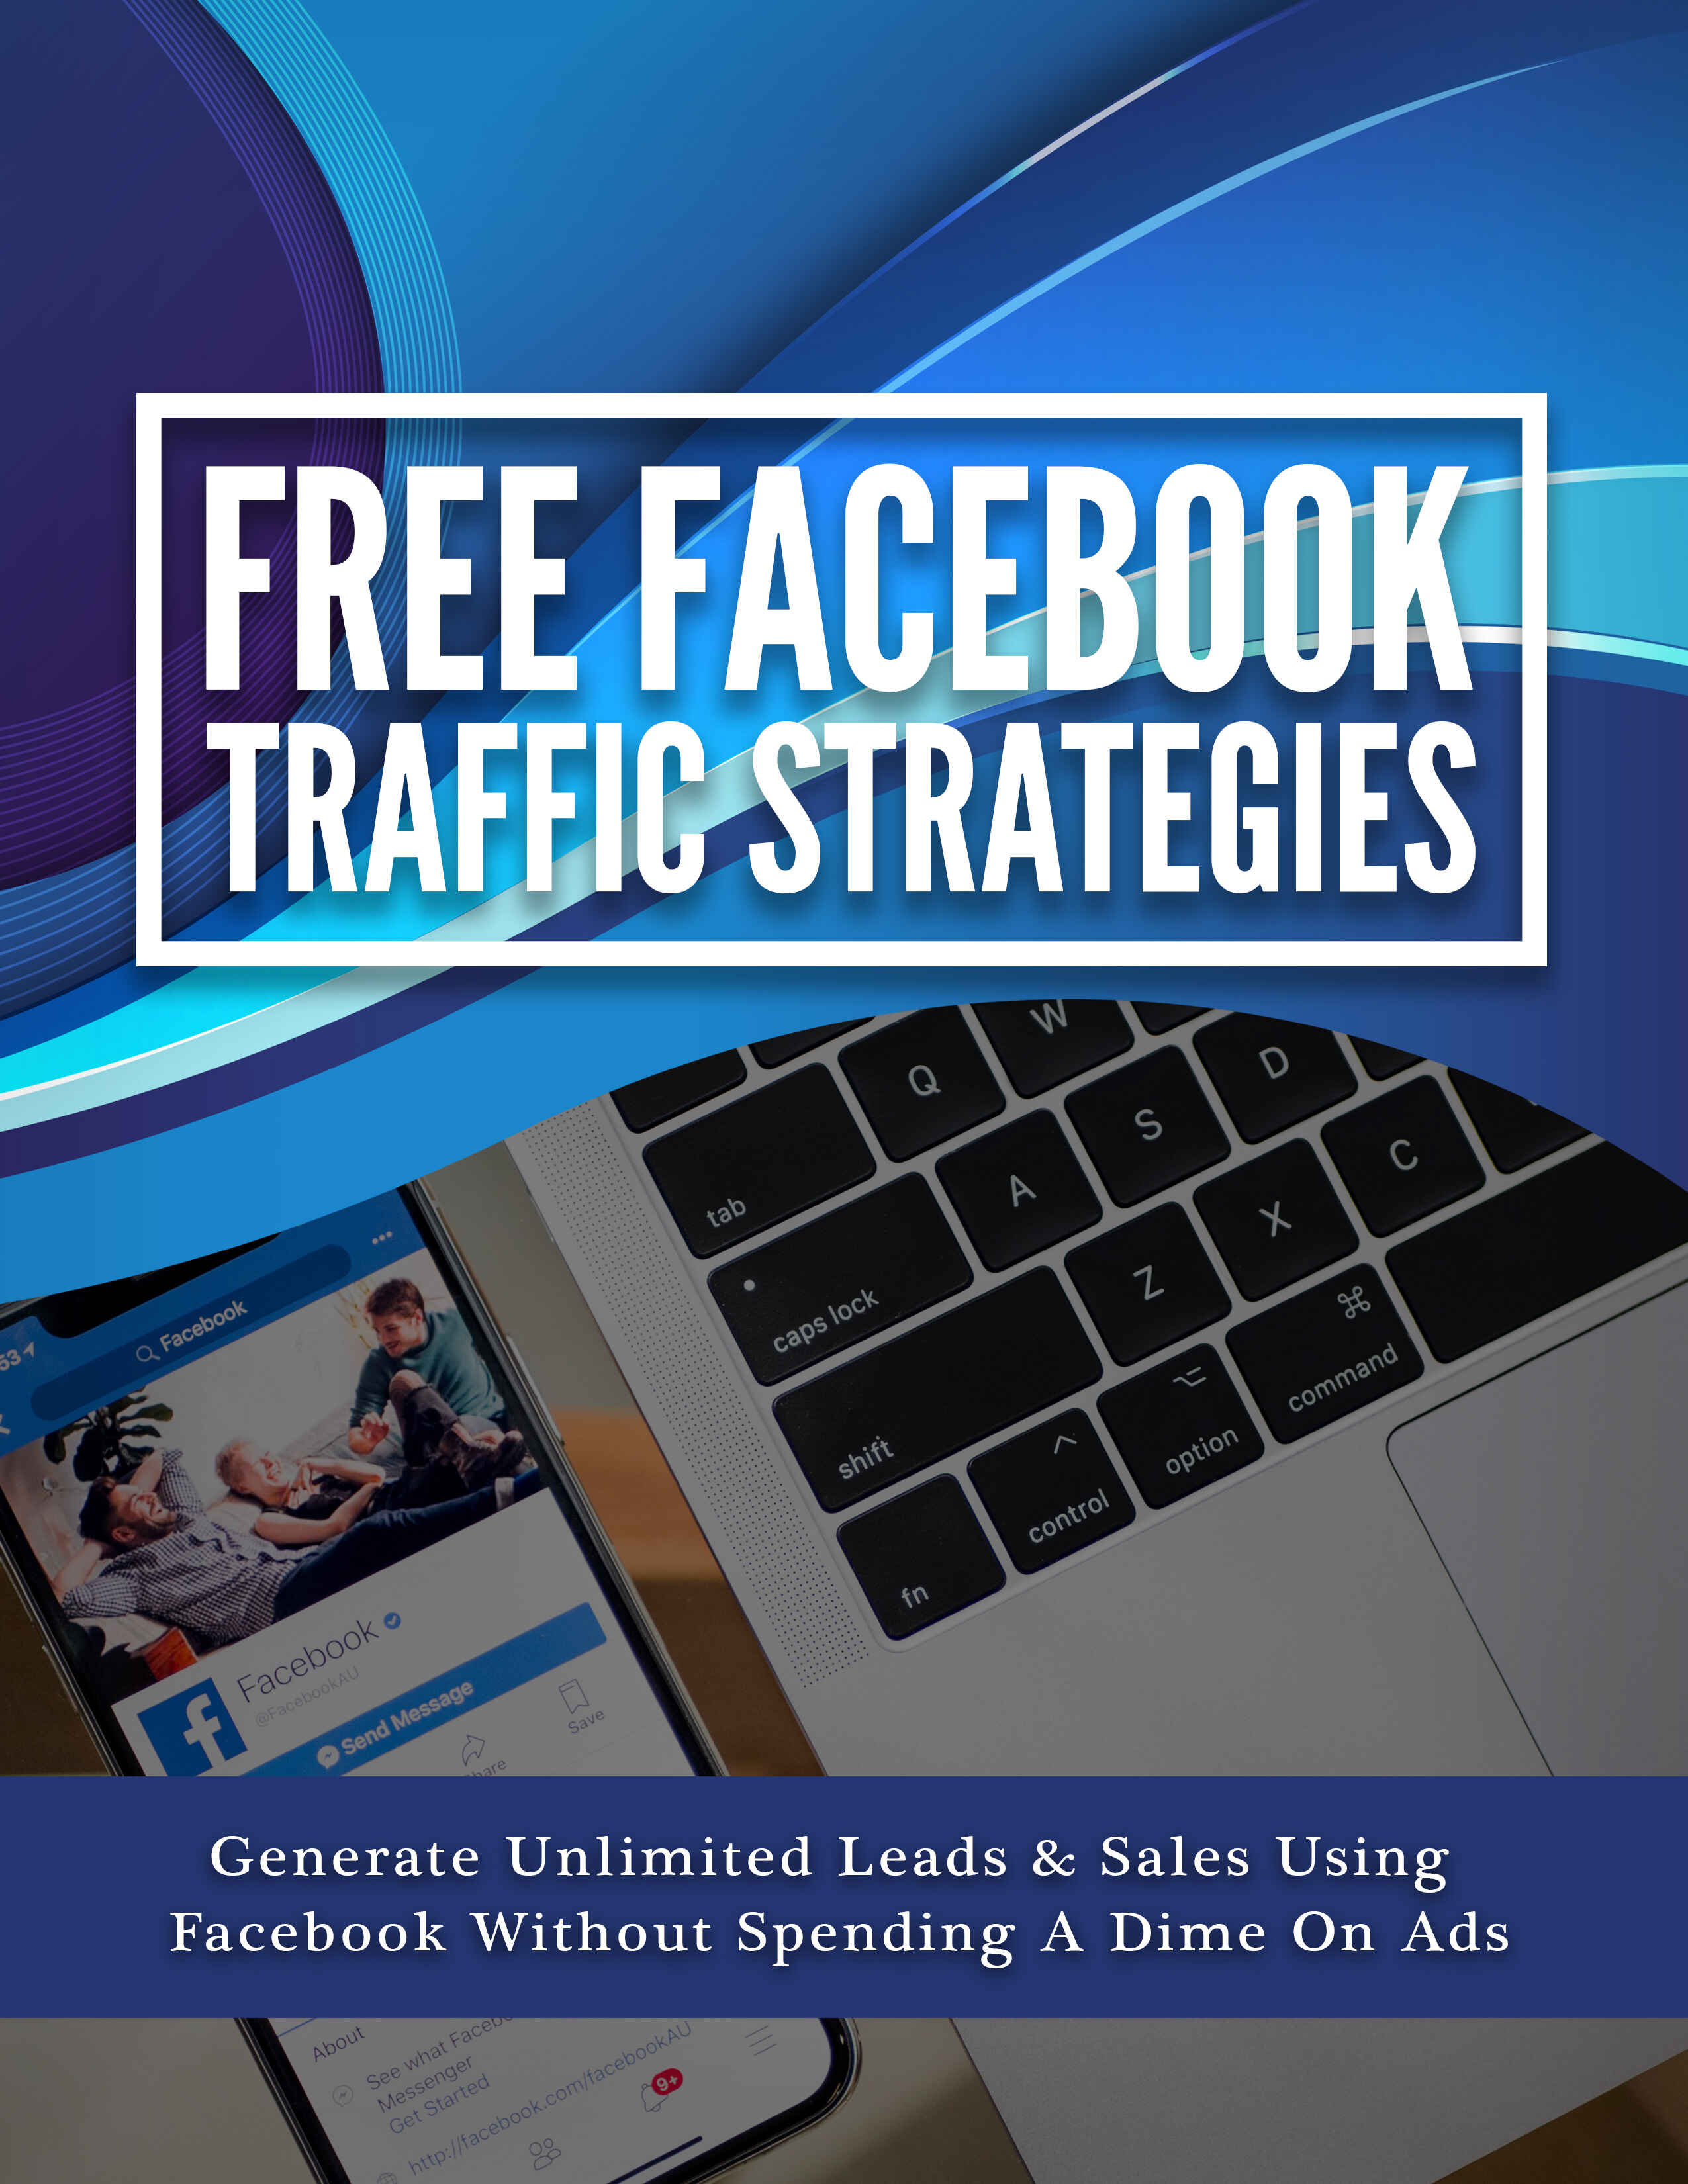 Free Facebook Traffic Strategies (Generate Unlimited Leads & Sales Using Facebook Without Spending A Dime On Ads) Ebook's Ebook Image